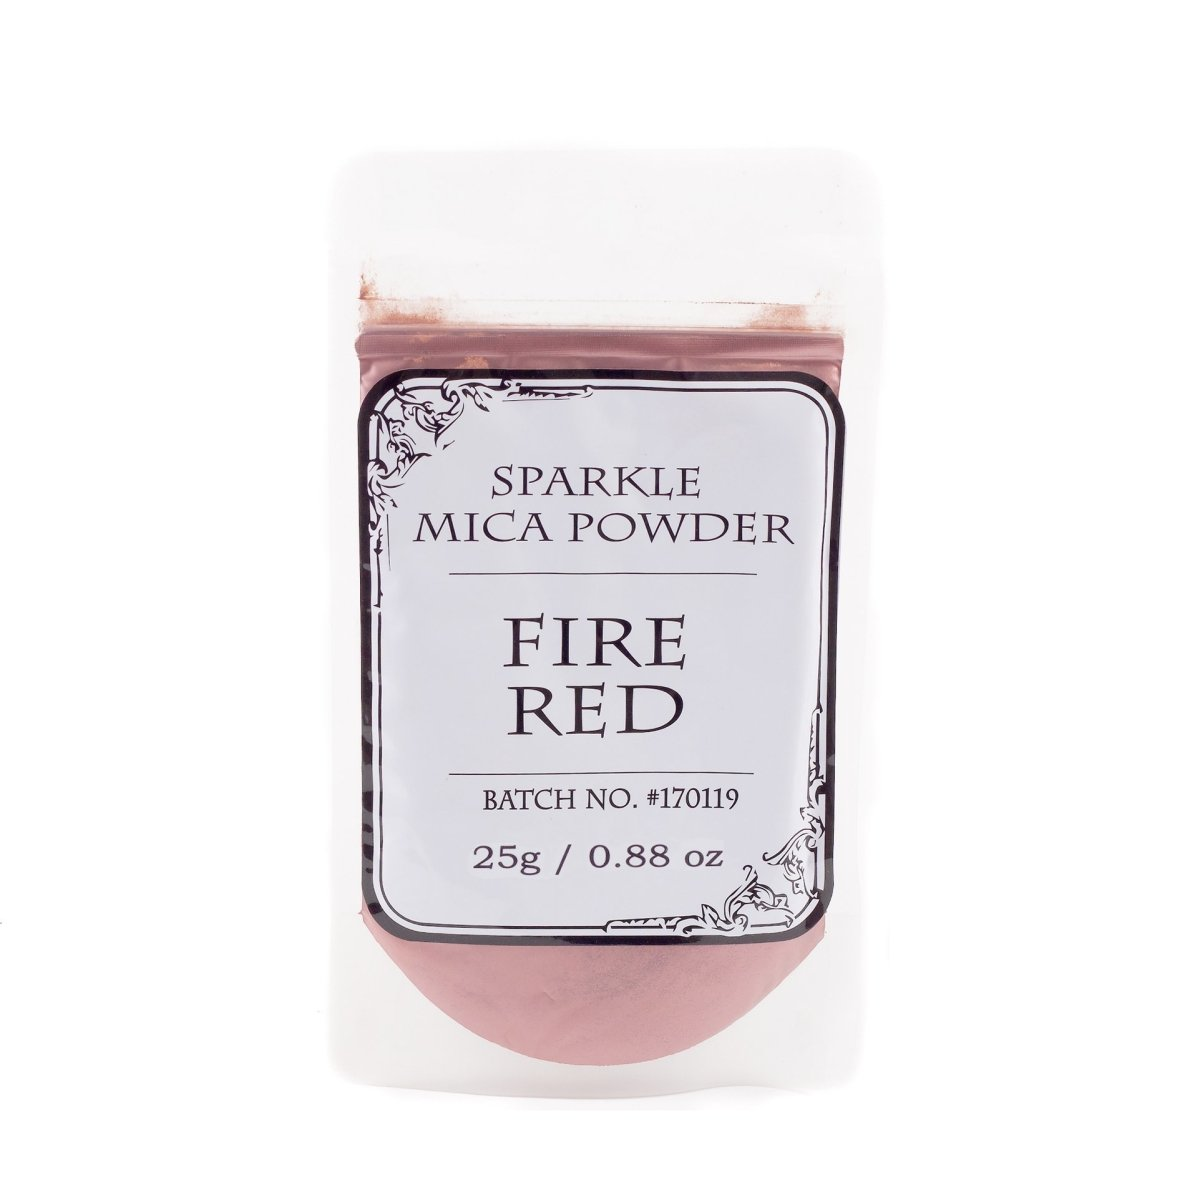 Fire Red Sparkle Mica - Mystic Moments UK